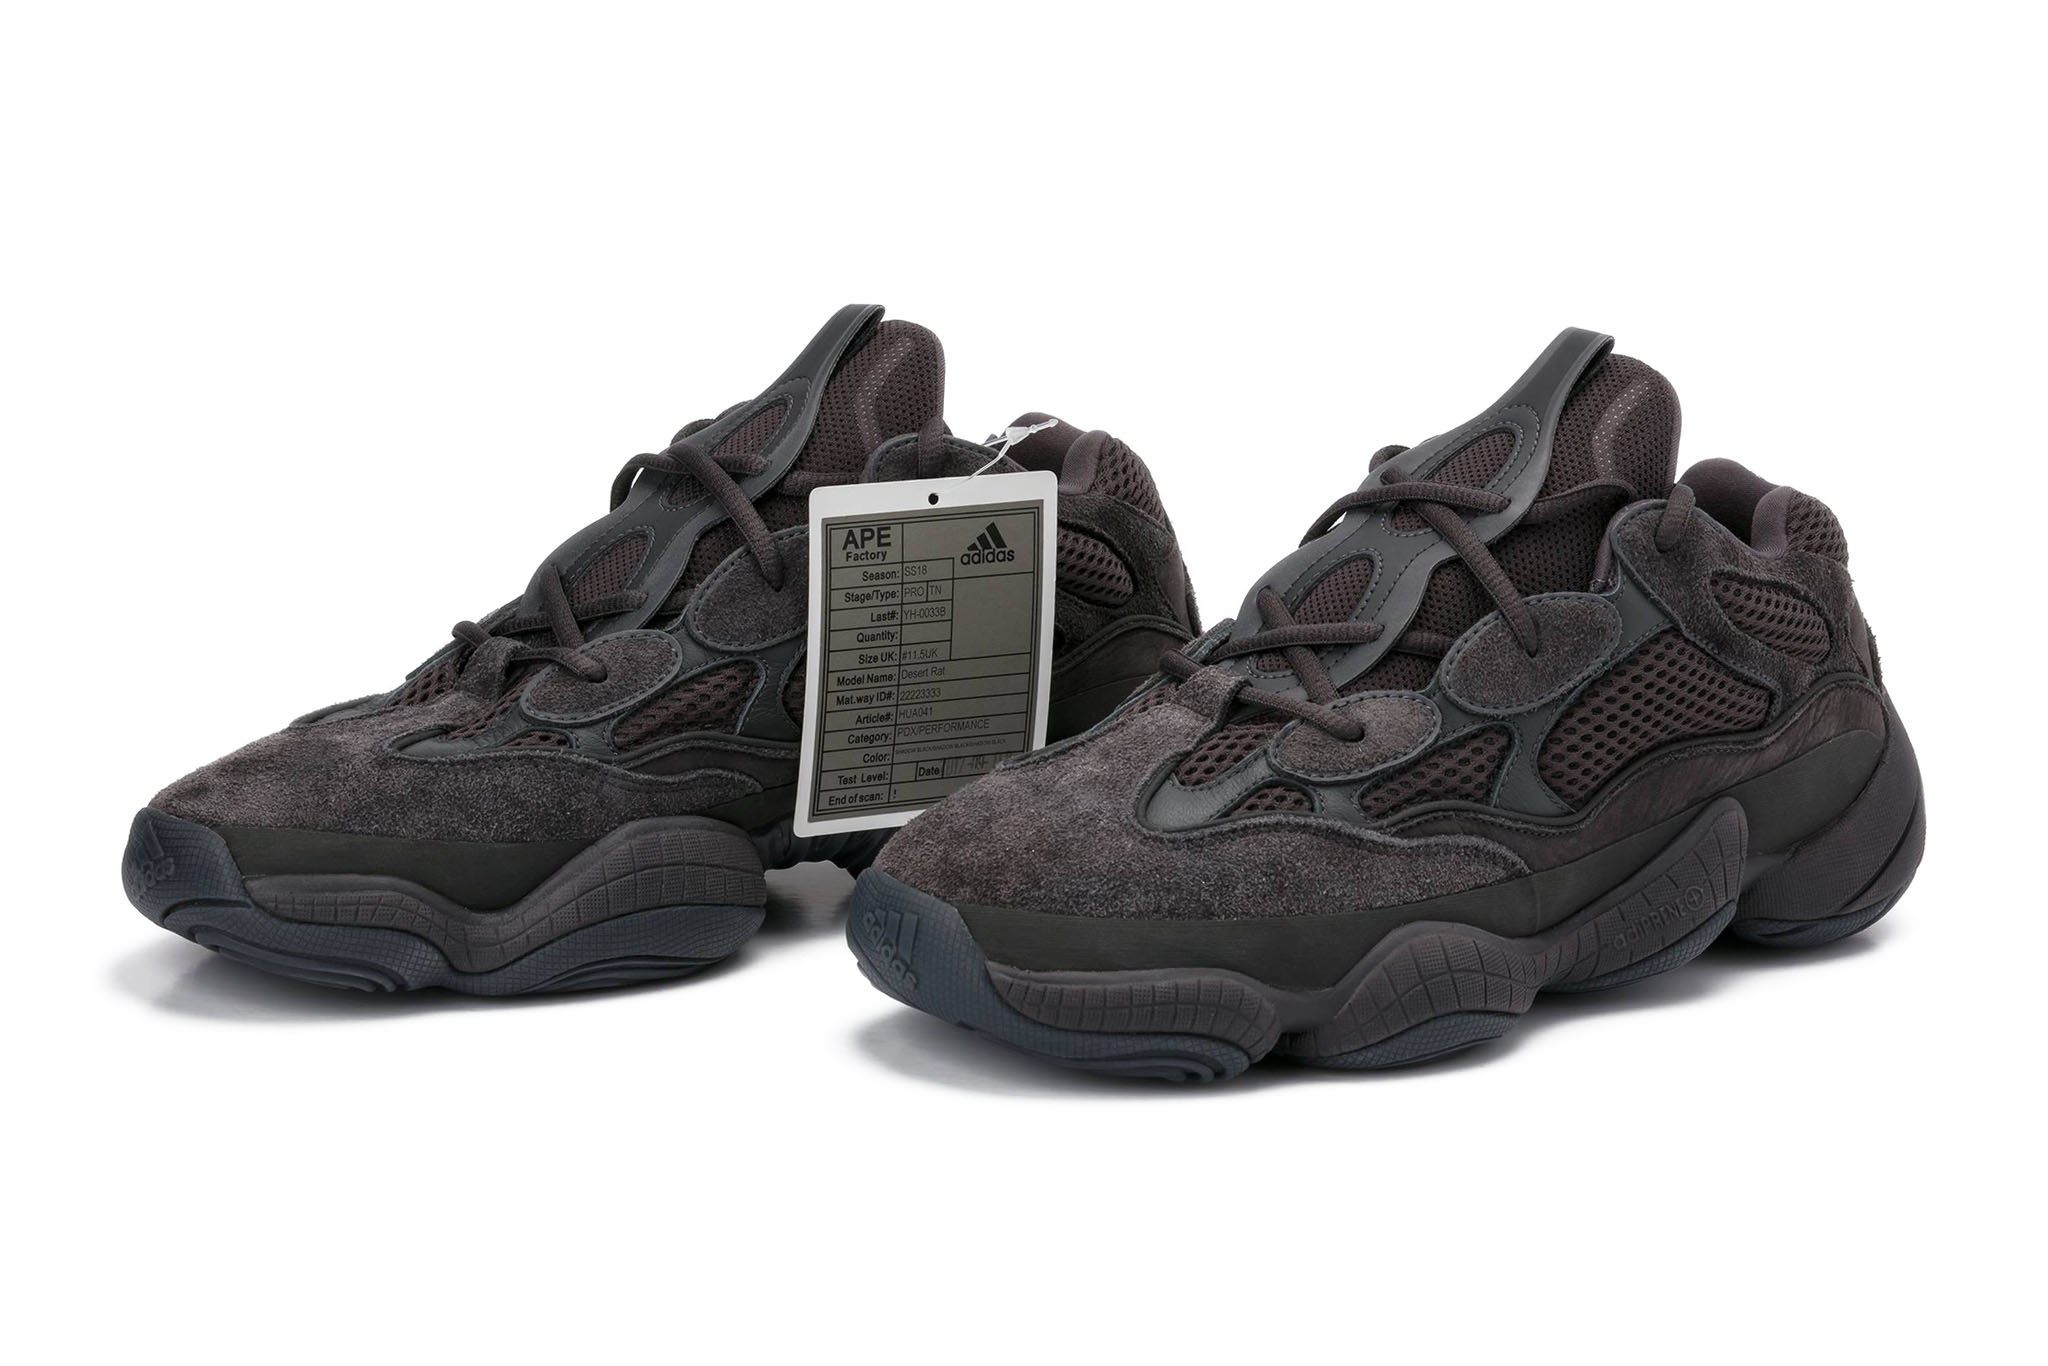 Mediar Rubí Bienes diversos  The adidas Yeezy 500 'Shadow Black' Is Available Now… But There's A Catch |  The Sole Supplier